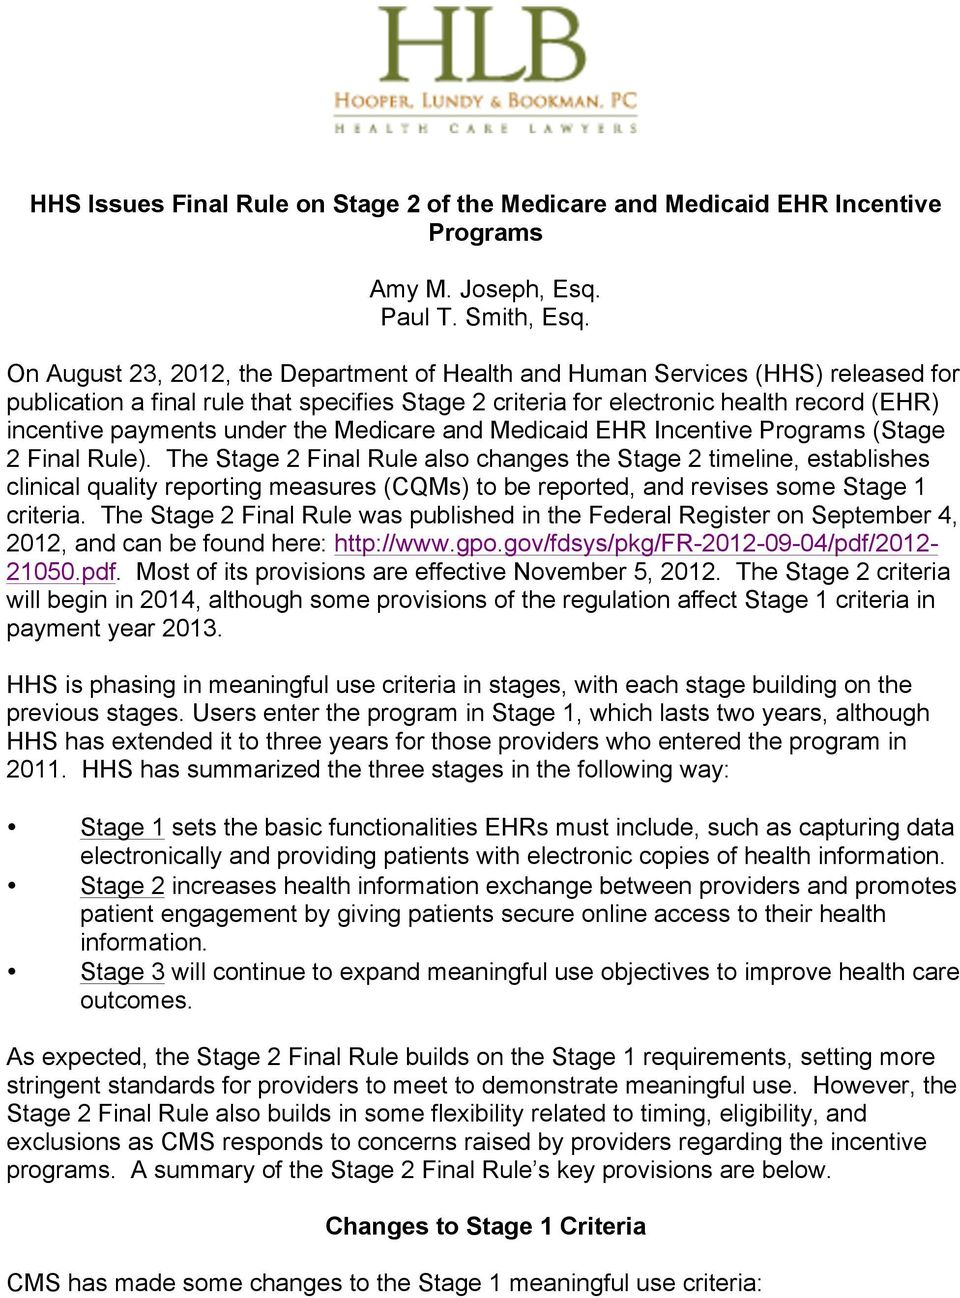 the Medicare and Medicaid EHR Incentive Programs (Stage 2 Final Rule).